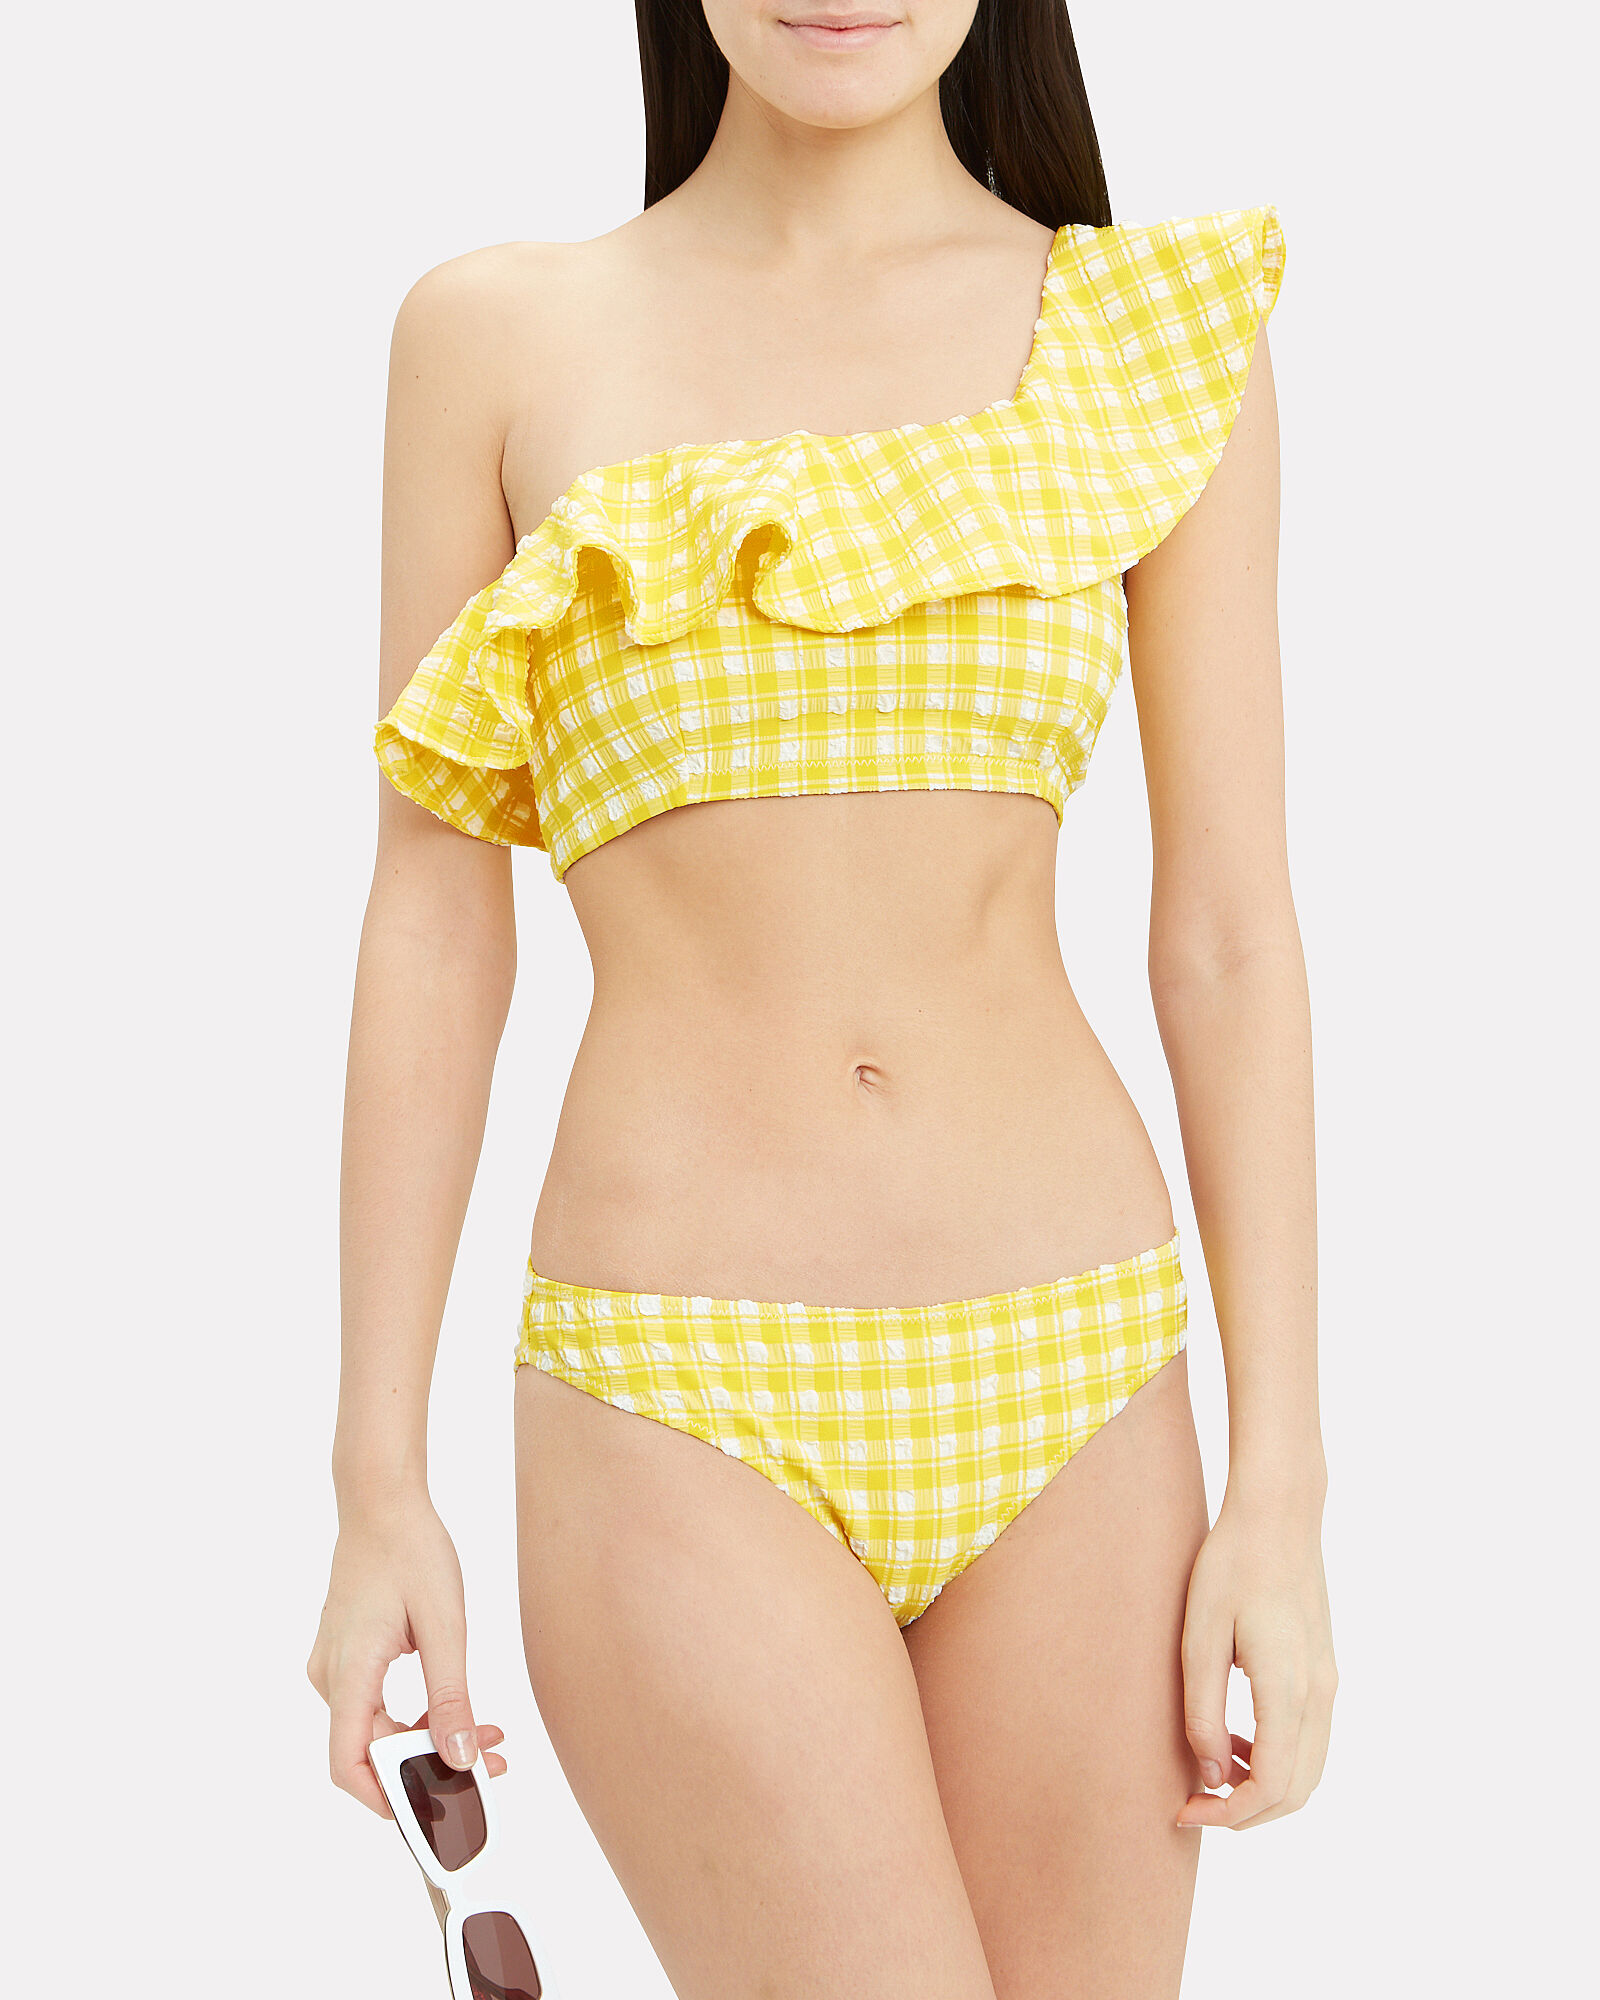 Yellow Seersucker One Shoulder Bikini Top, YELLOW, hi-res